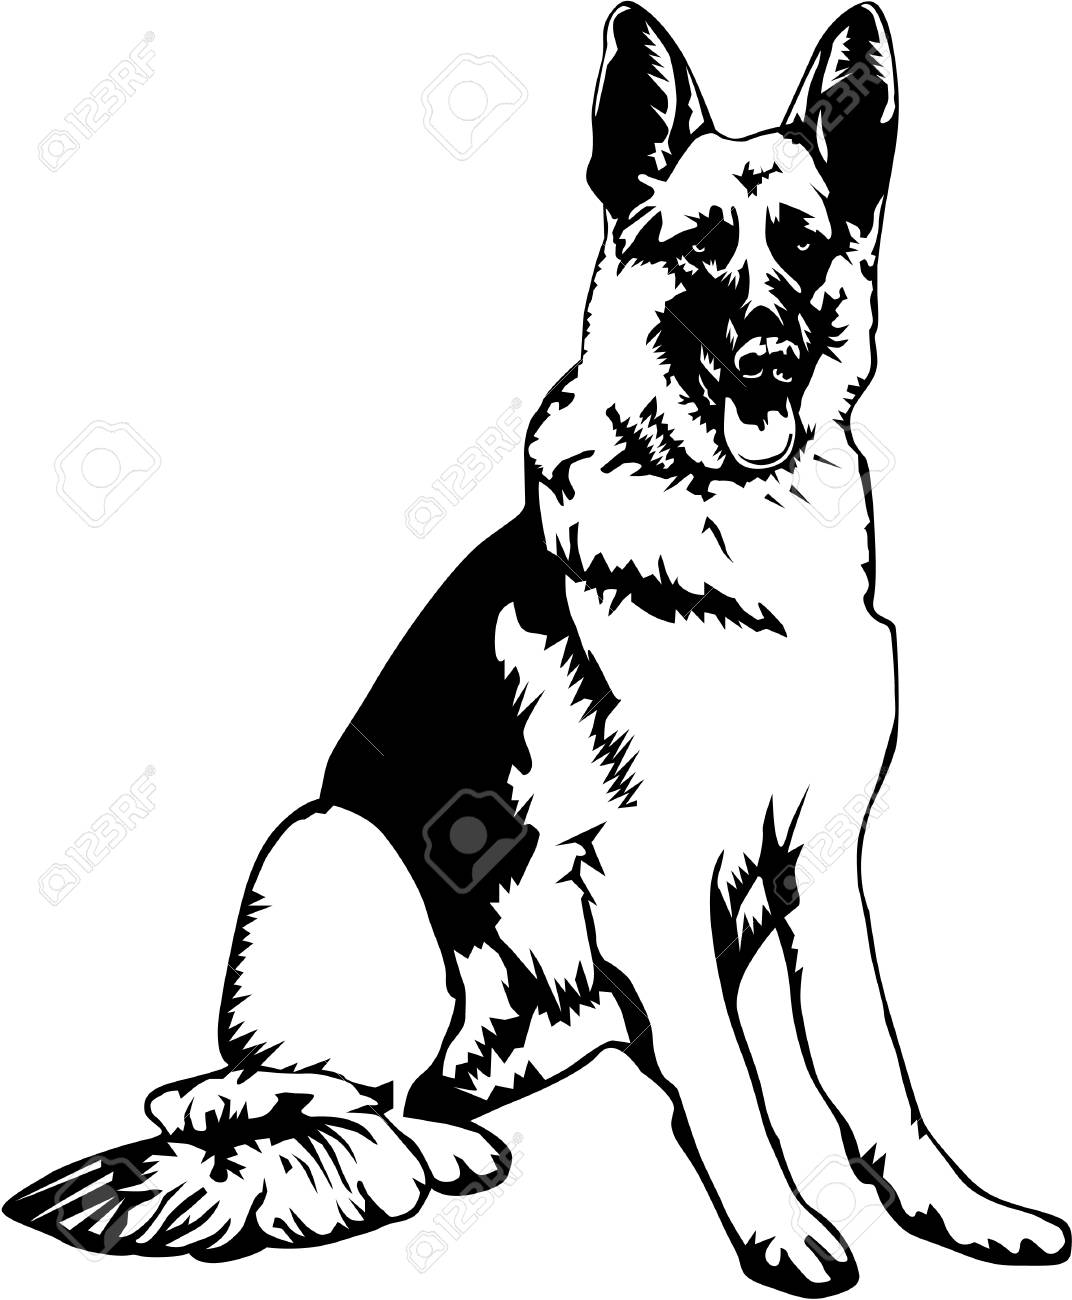 German shepherd clipart black and white 4 » Clipart Station.